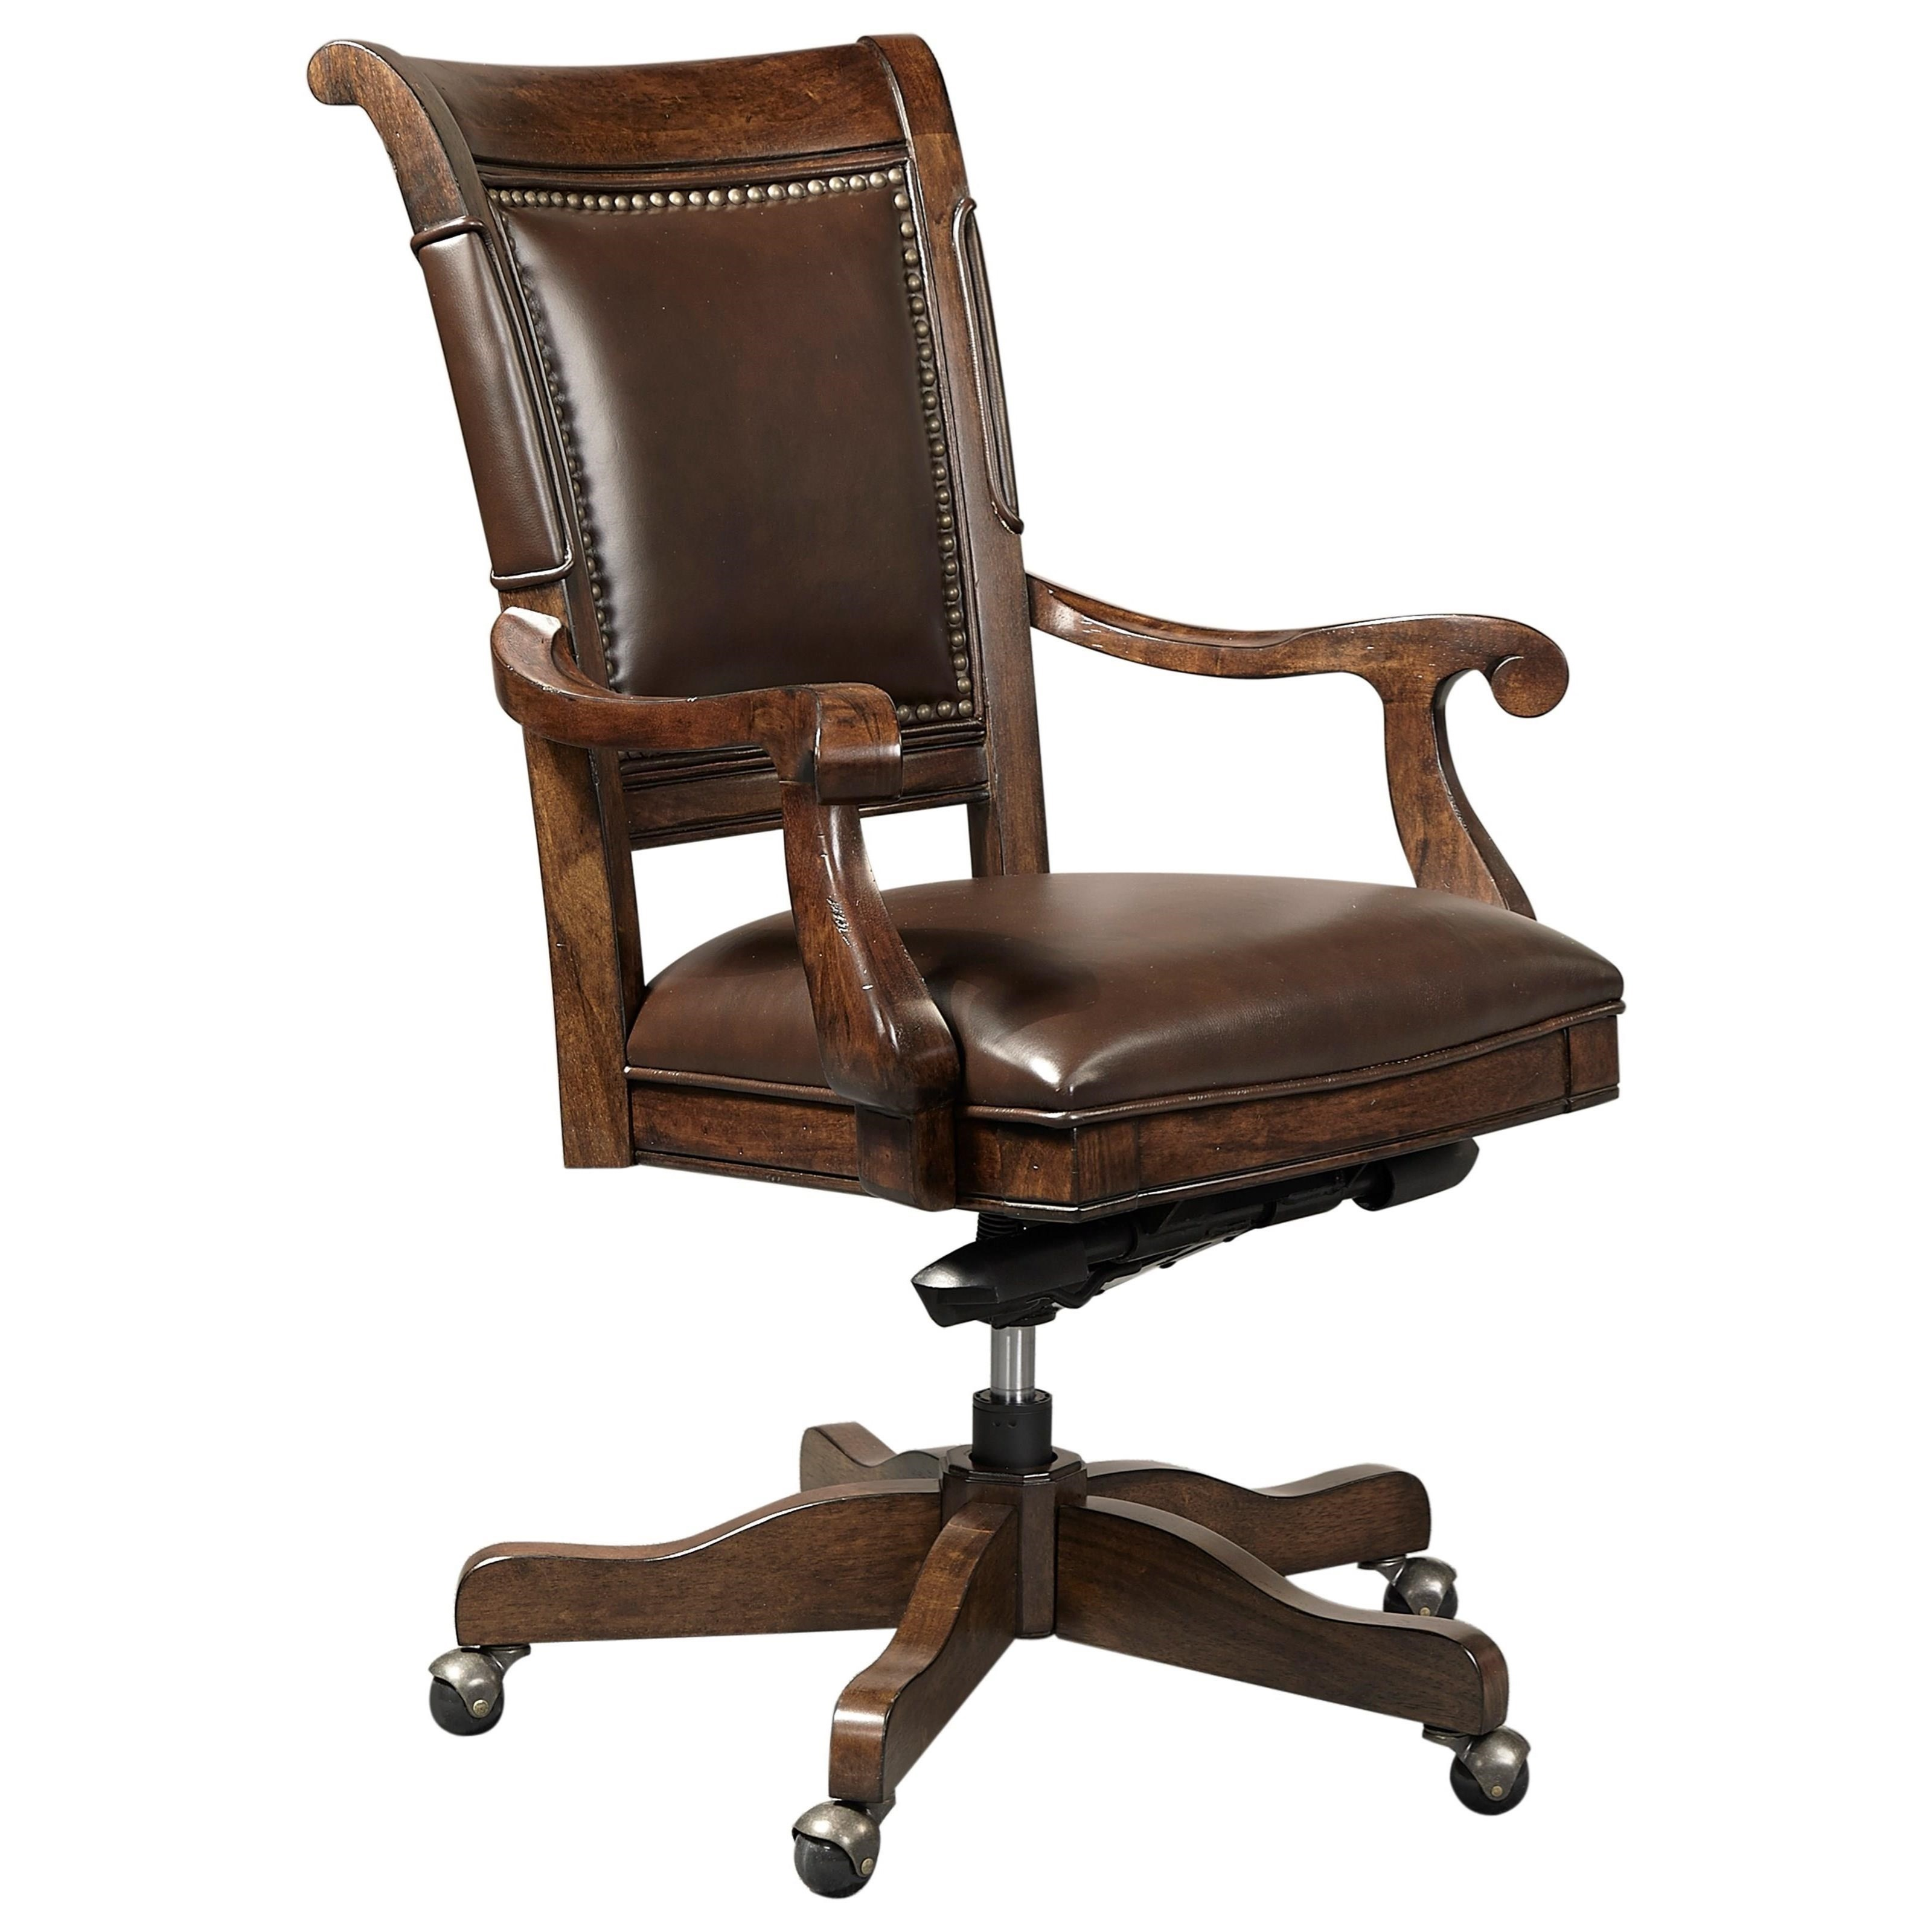 Classic Chair Grand Classic Office Arm Chair With Nailhead Trim By Aspenhome At Dunk Bright Furniture